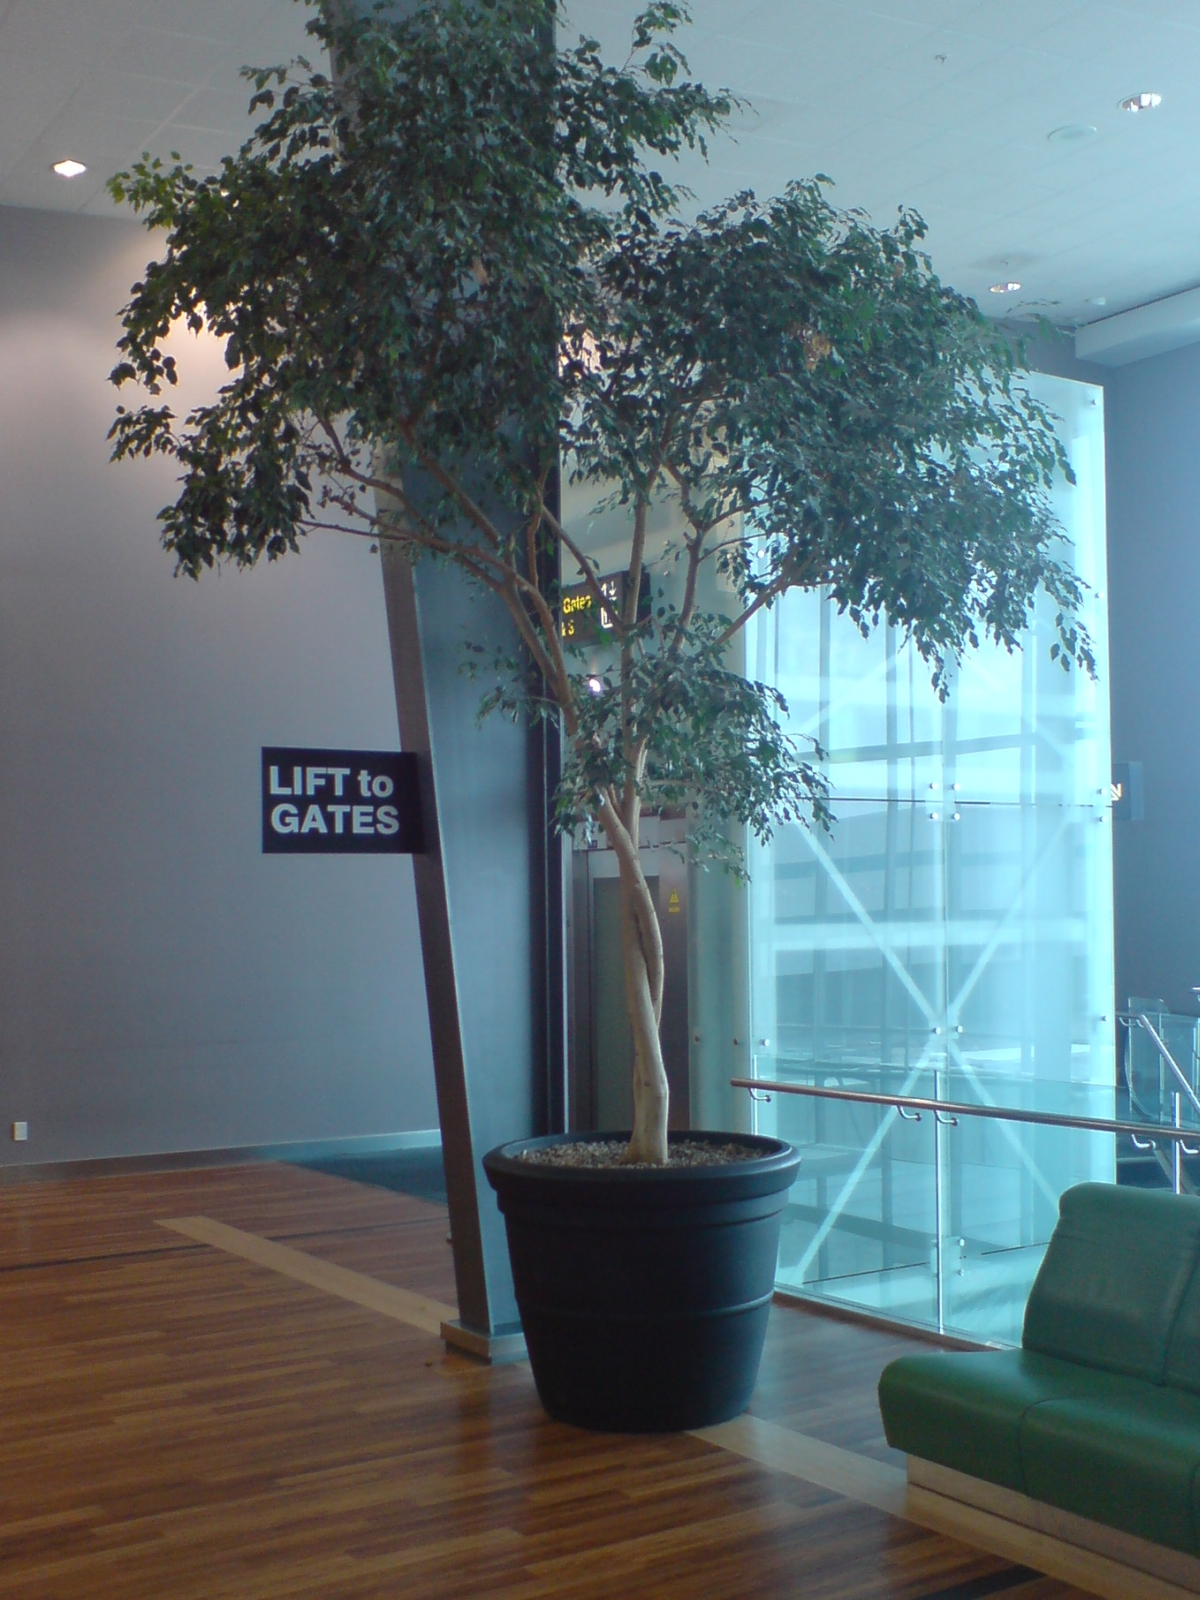 File:Gigantic Potted Tree Auckland Airport.jpg - Wikimedia Commons